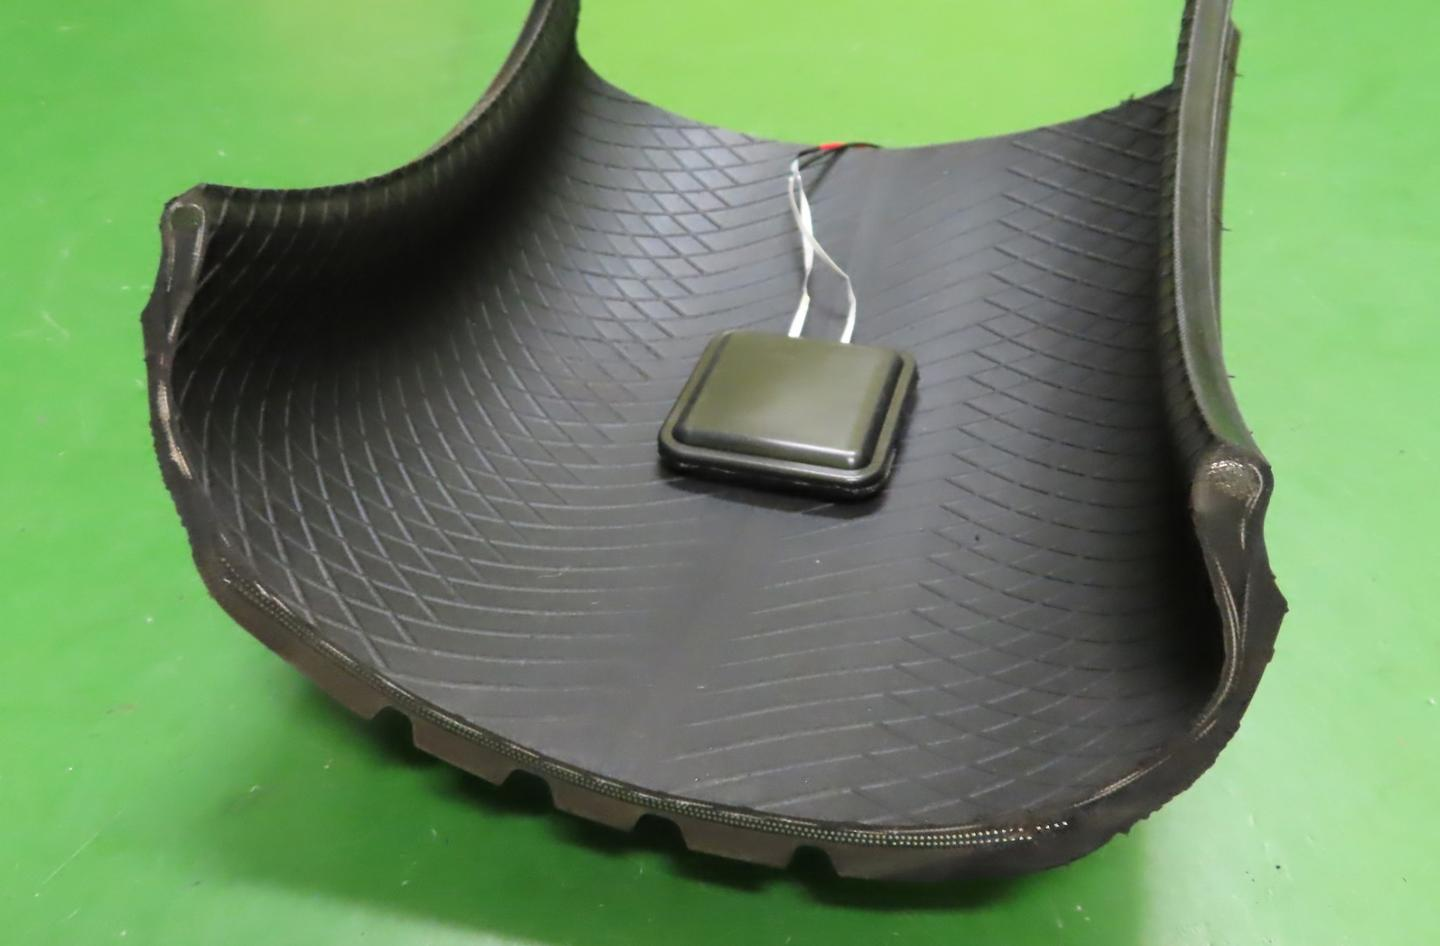 Sumimoto imagines initially its energy-harvesting device could be used to power things like tire pressure monitors